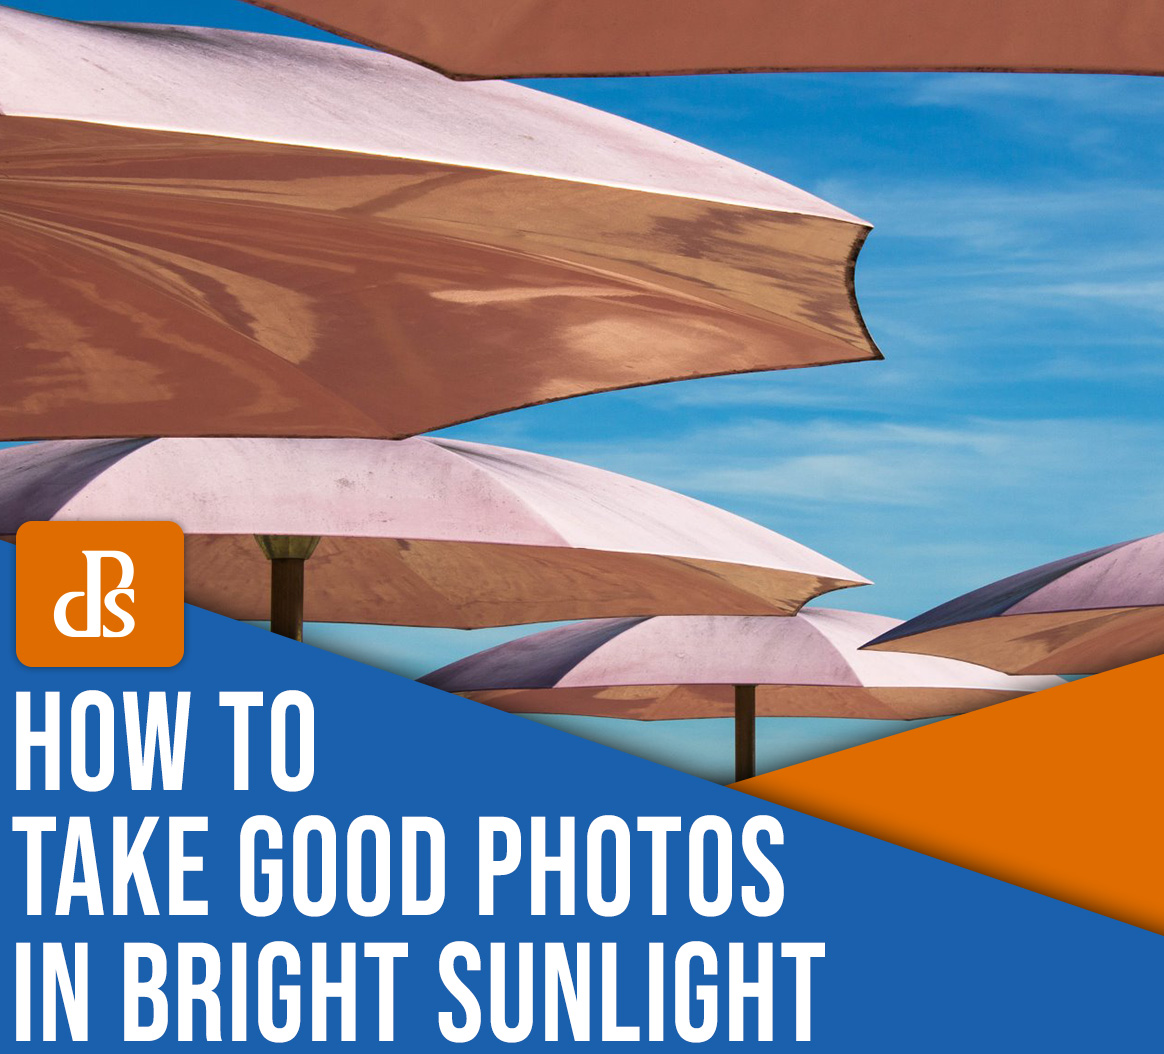 How to Take Good Pictures in Bright Sunlight: 11 Easy Tips